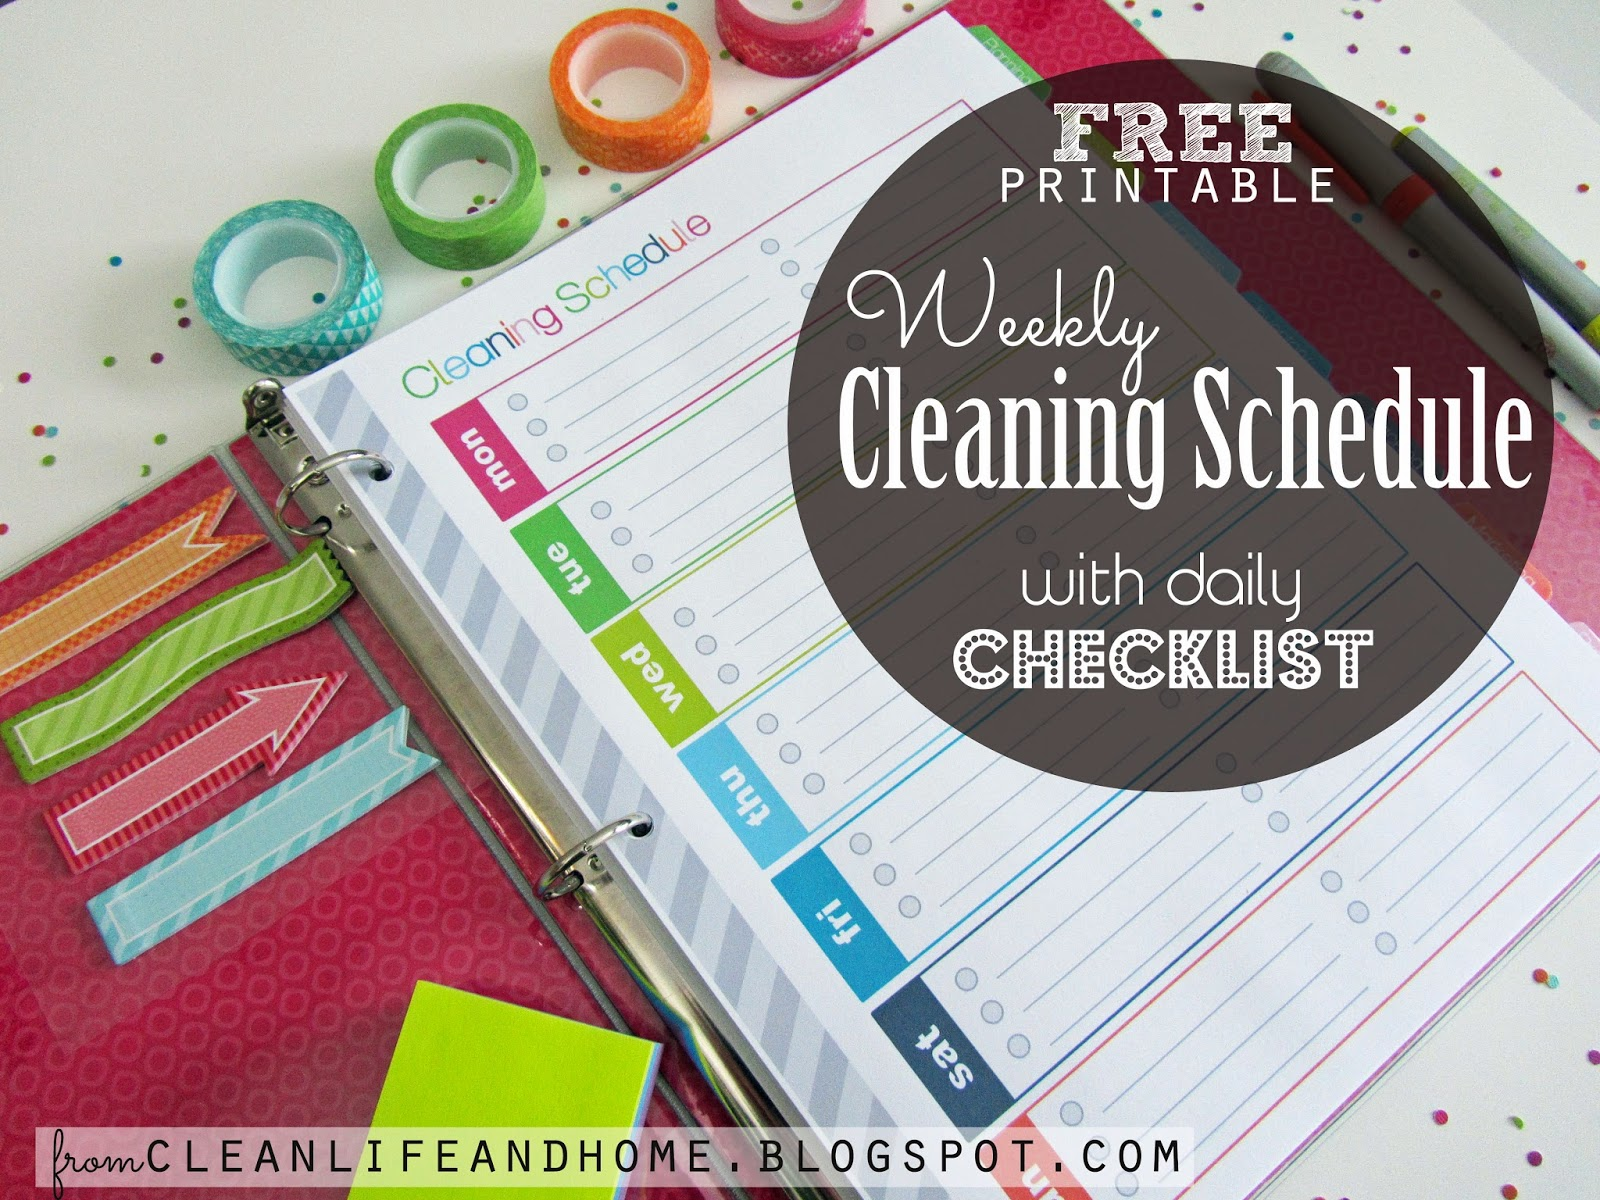 Clean Life And Home Free Printable Weekly Cleaning